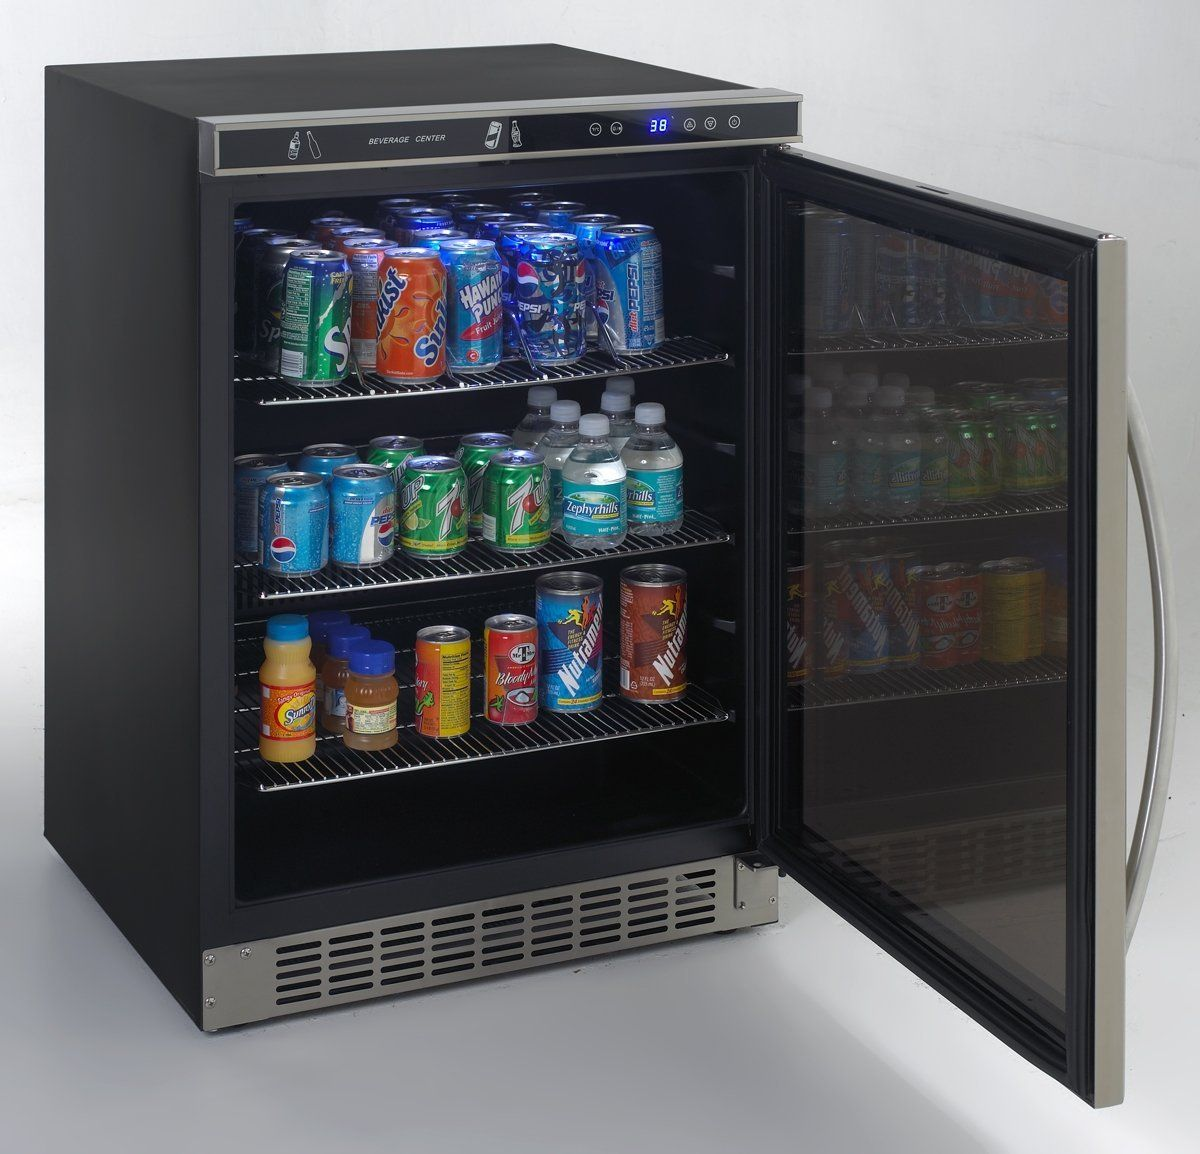 Avanti Bca5105sg 1 Beverage Cooler 5 3 Cubic Feet Want To Know